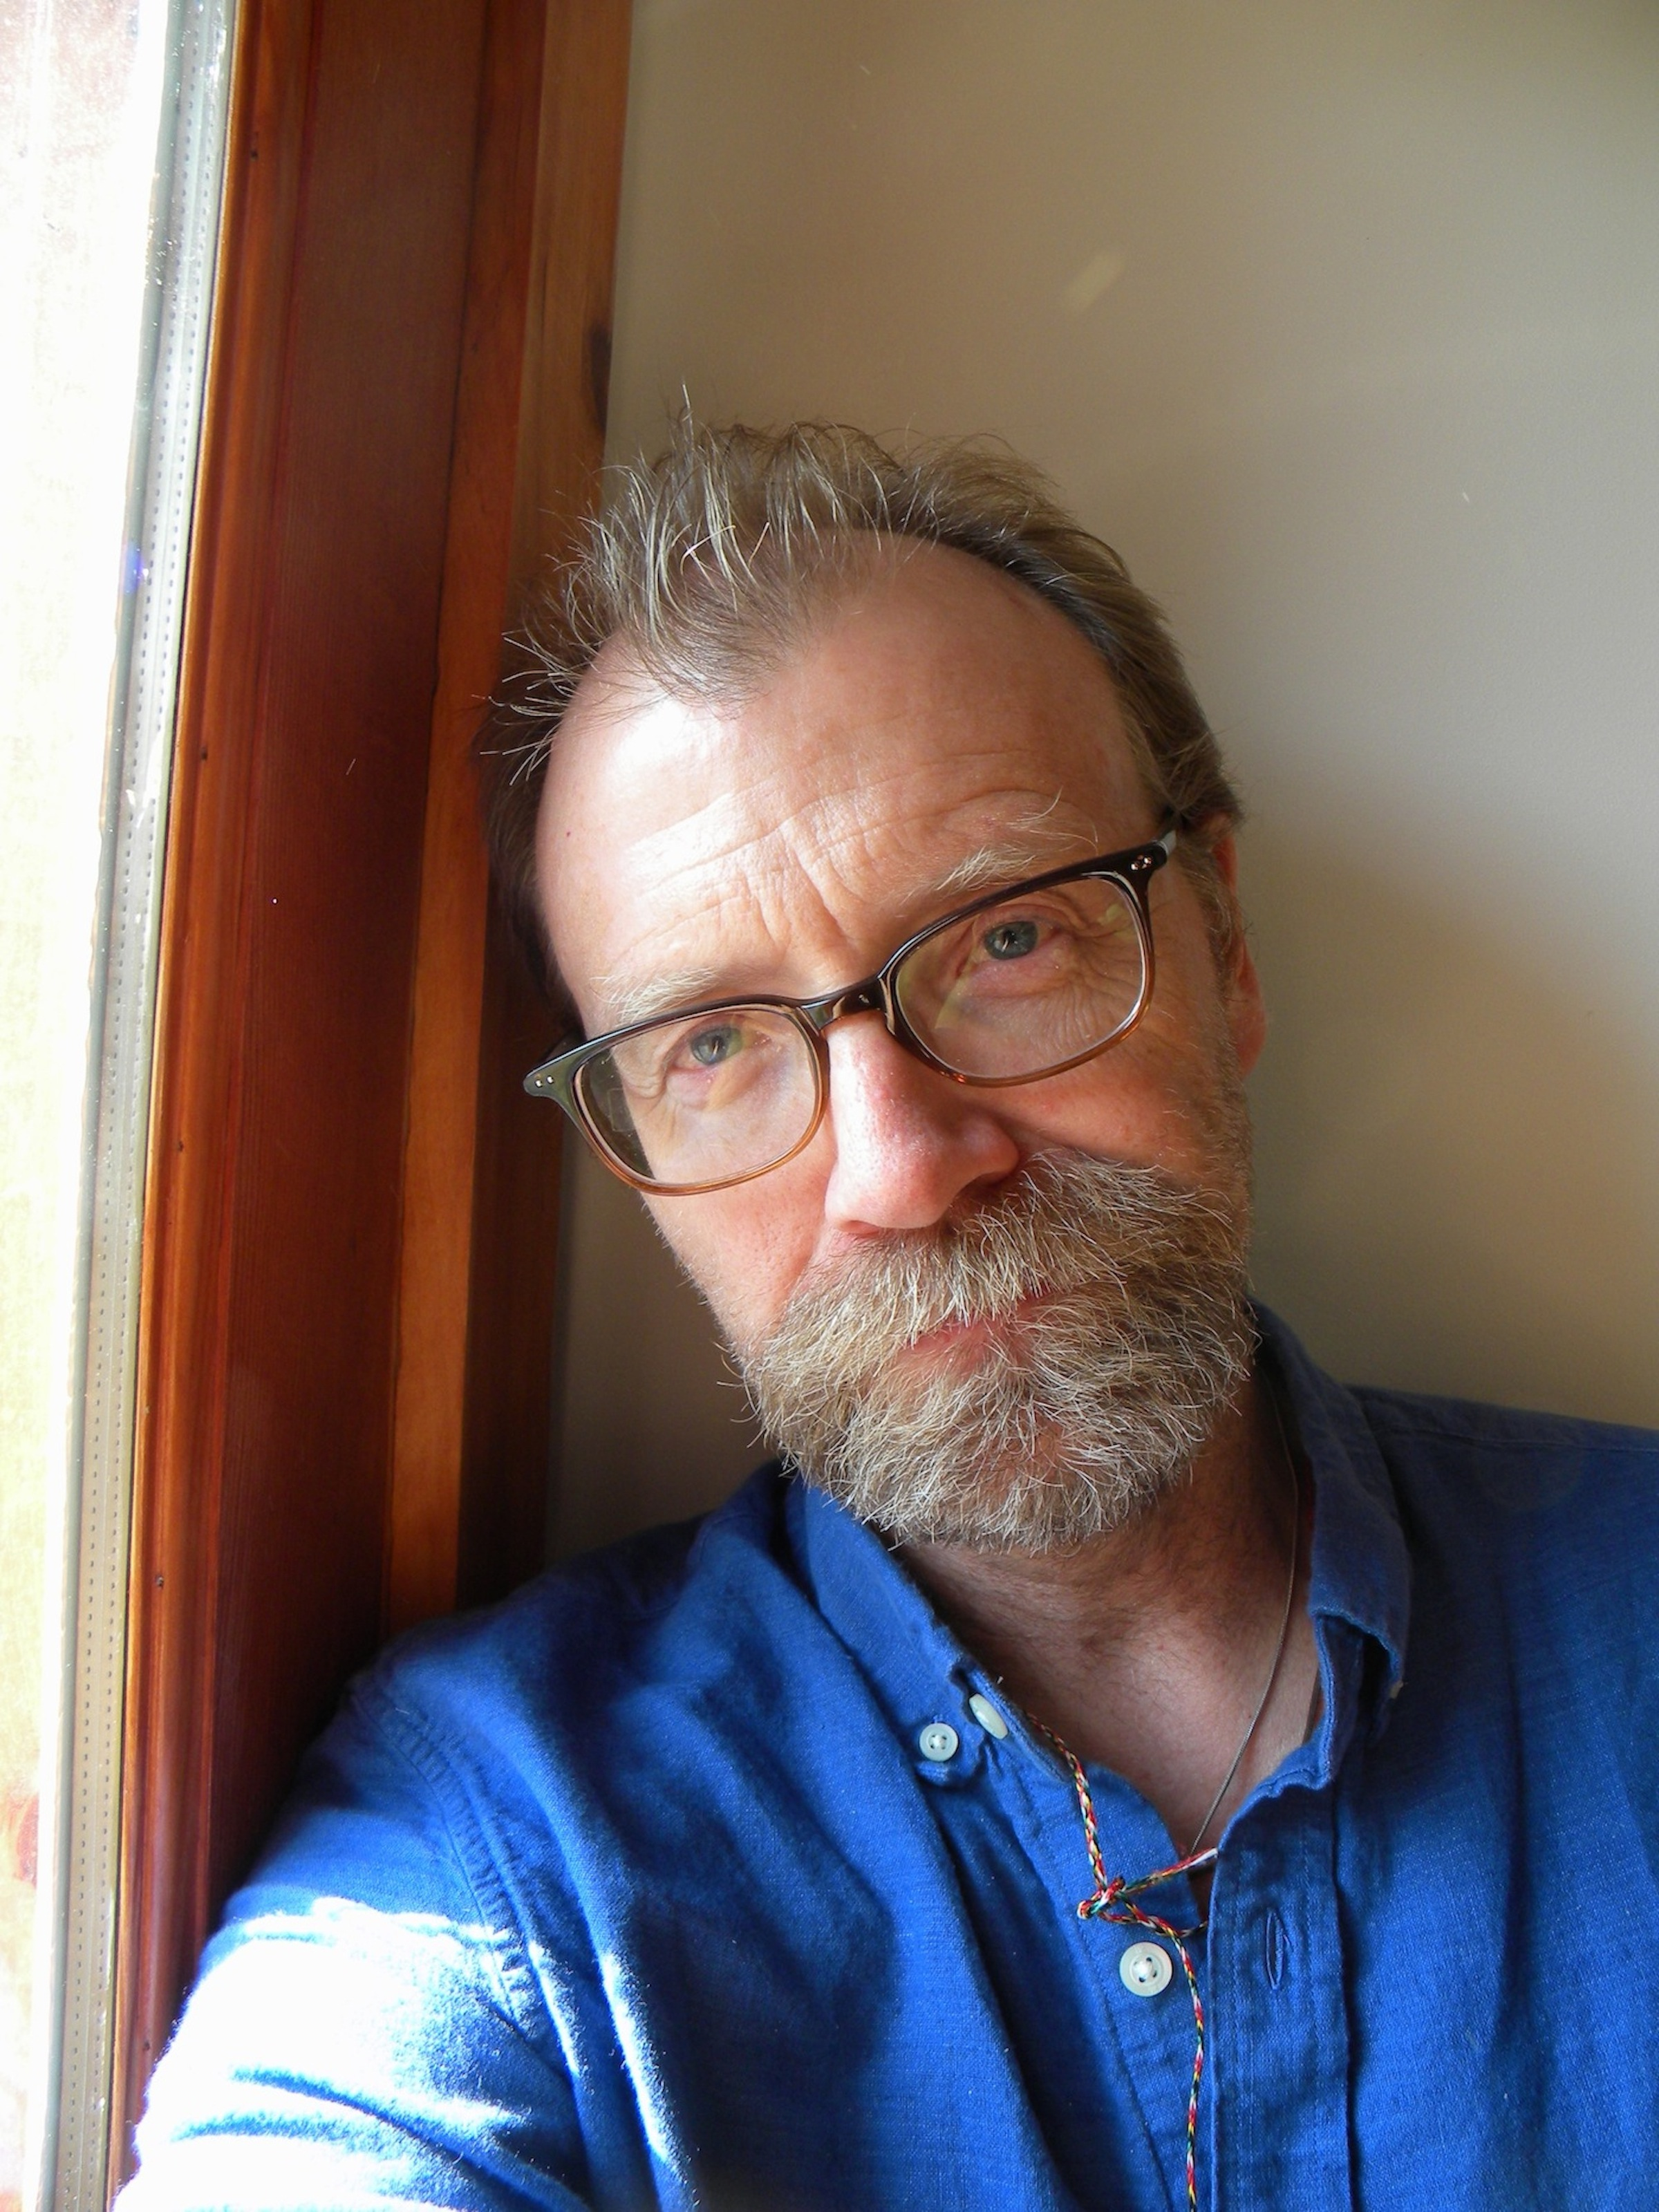 This interview was conducted with George Saunders for our first issue, published in February 2013.